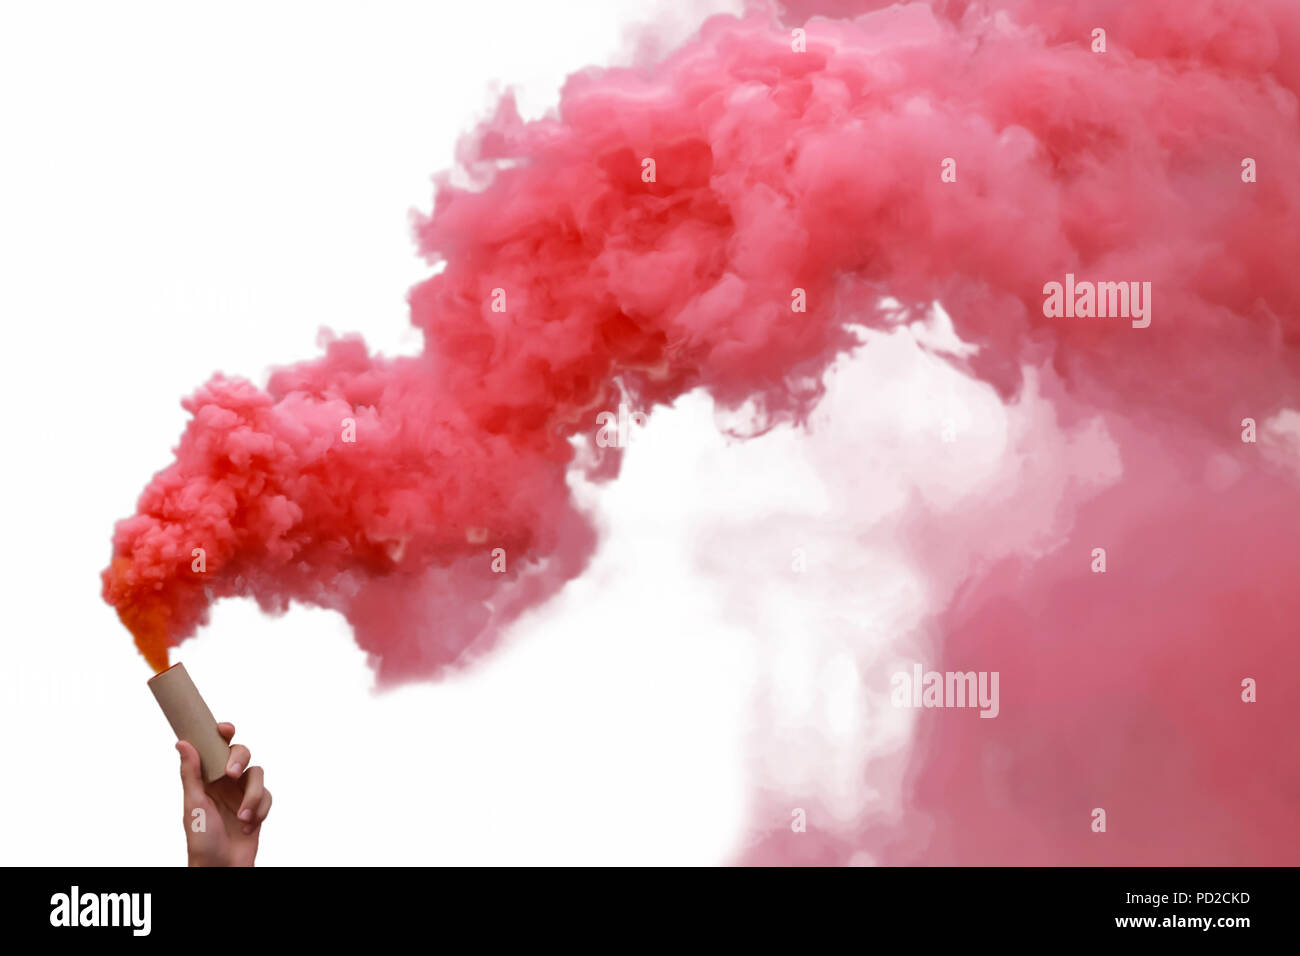 Human hand holding smoke bombs with red smoke, isolated on white background. - Stock Image